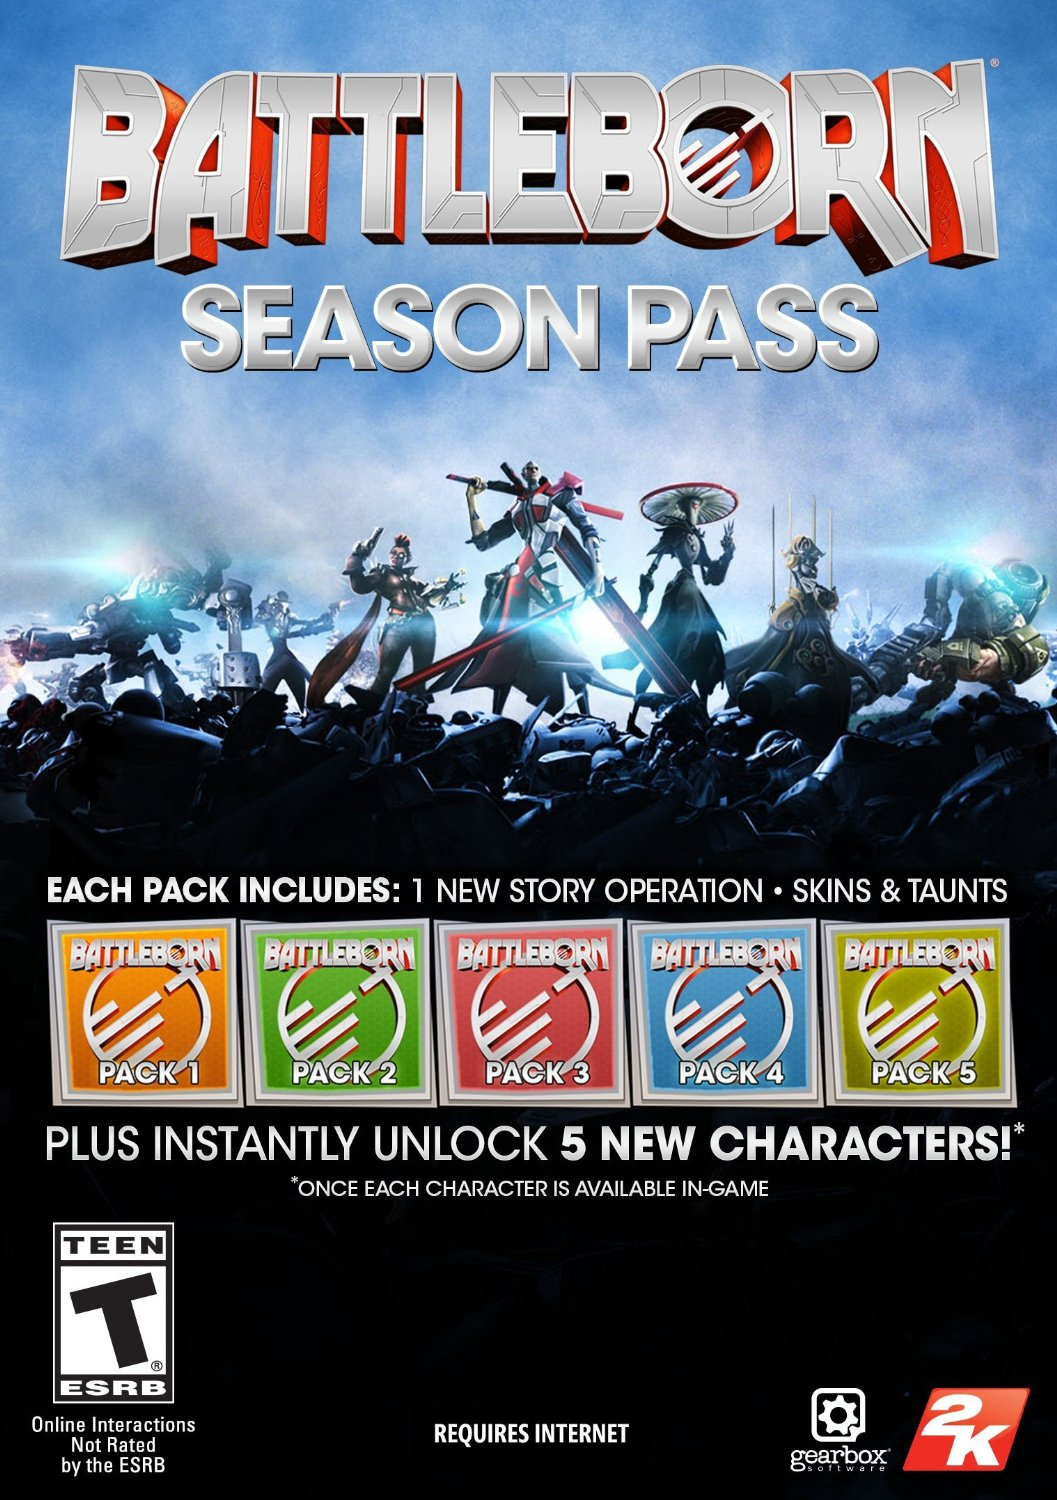 Season Pass - DLC Battleborn(Steam KEY)